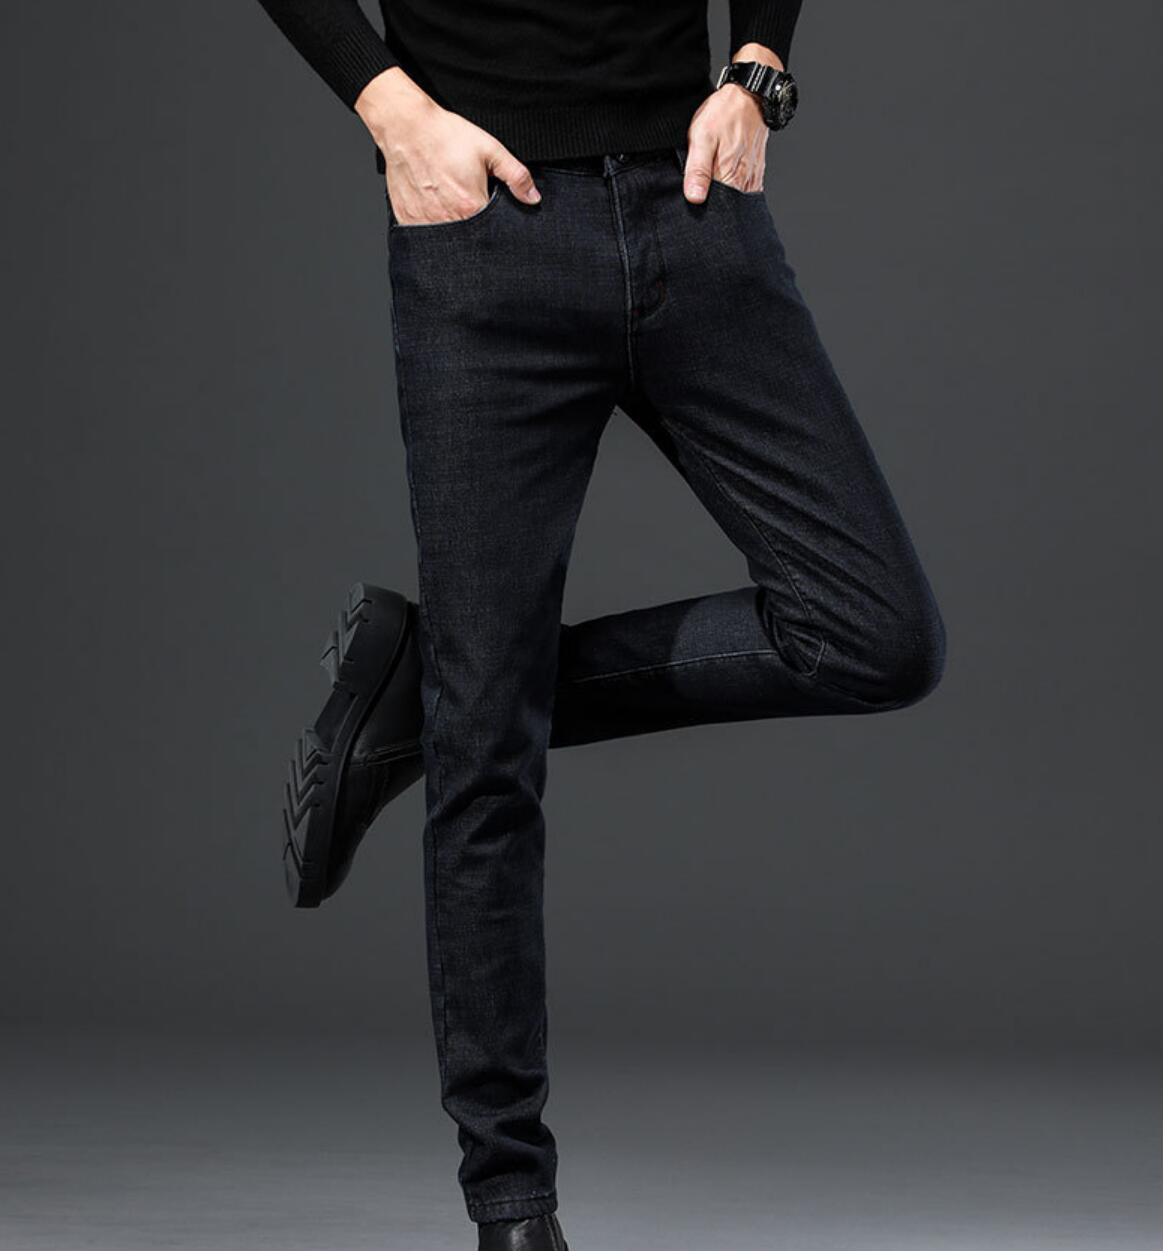 NEW 2020 Spring  Men's Jeans Maa1 Casual Black Fashion Slim New Straight Stretch Men's Jeans KK7722-15